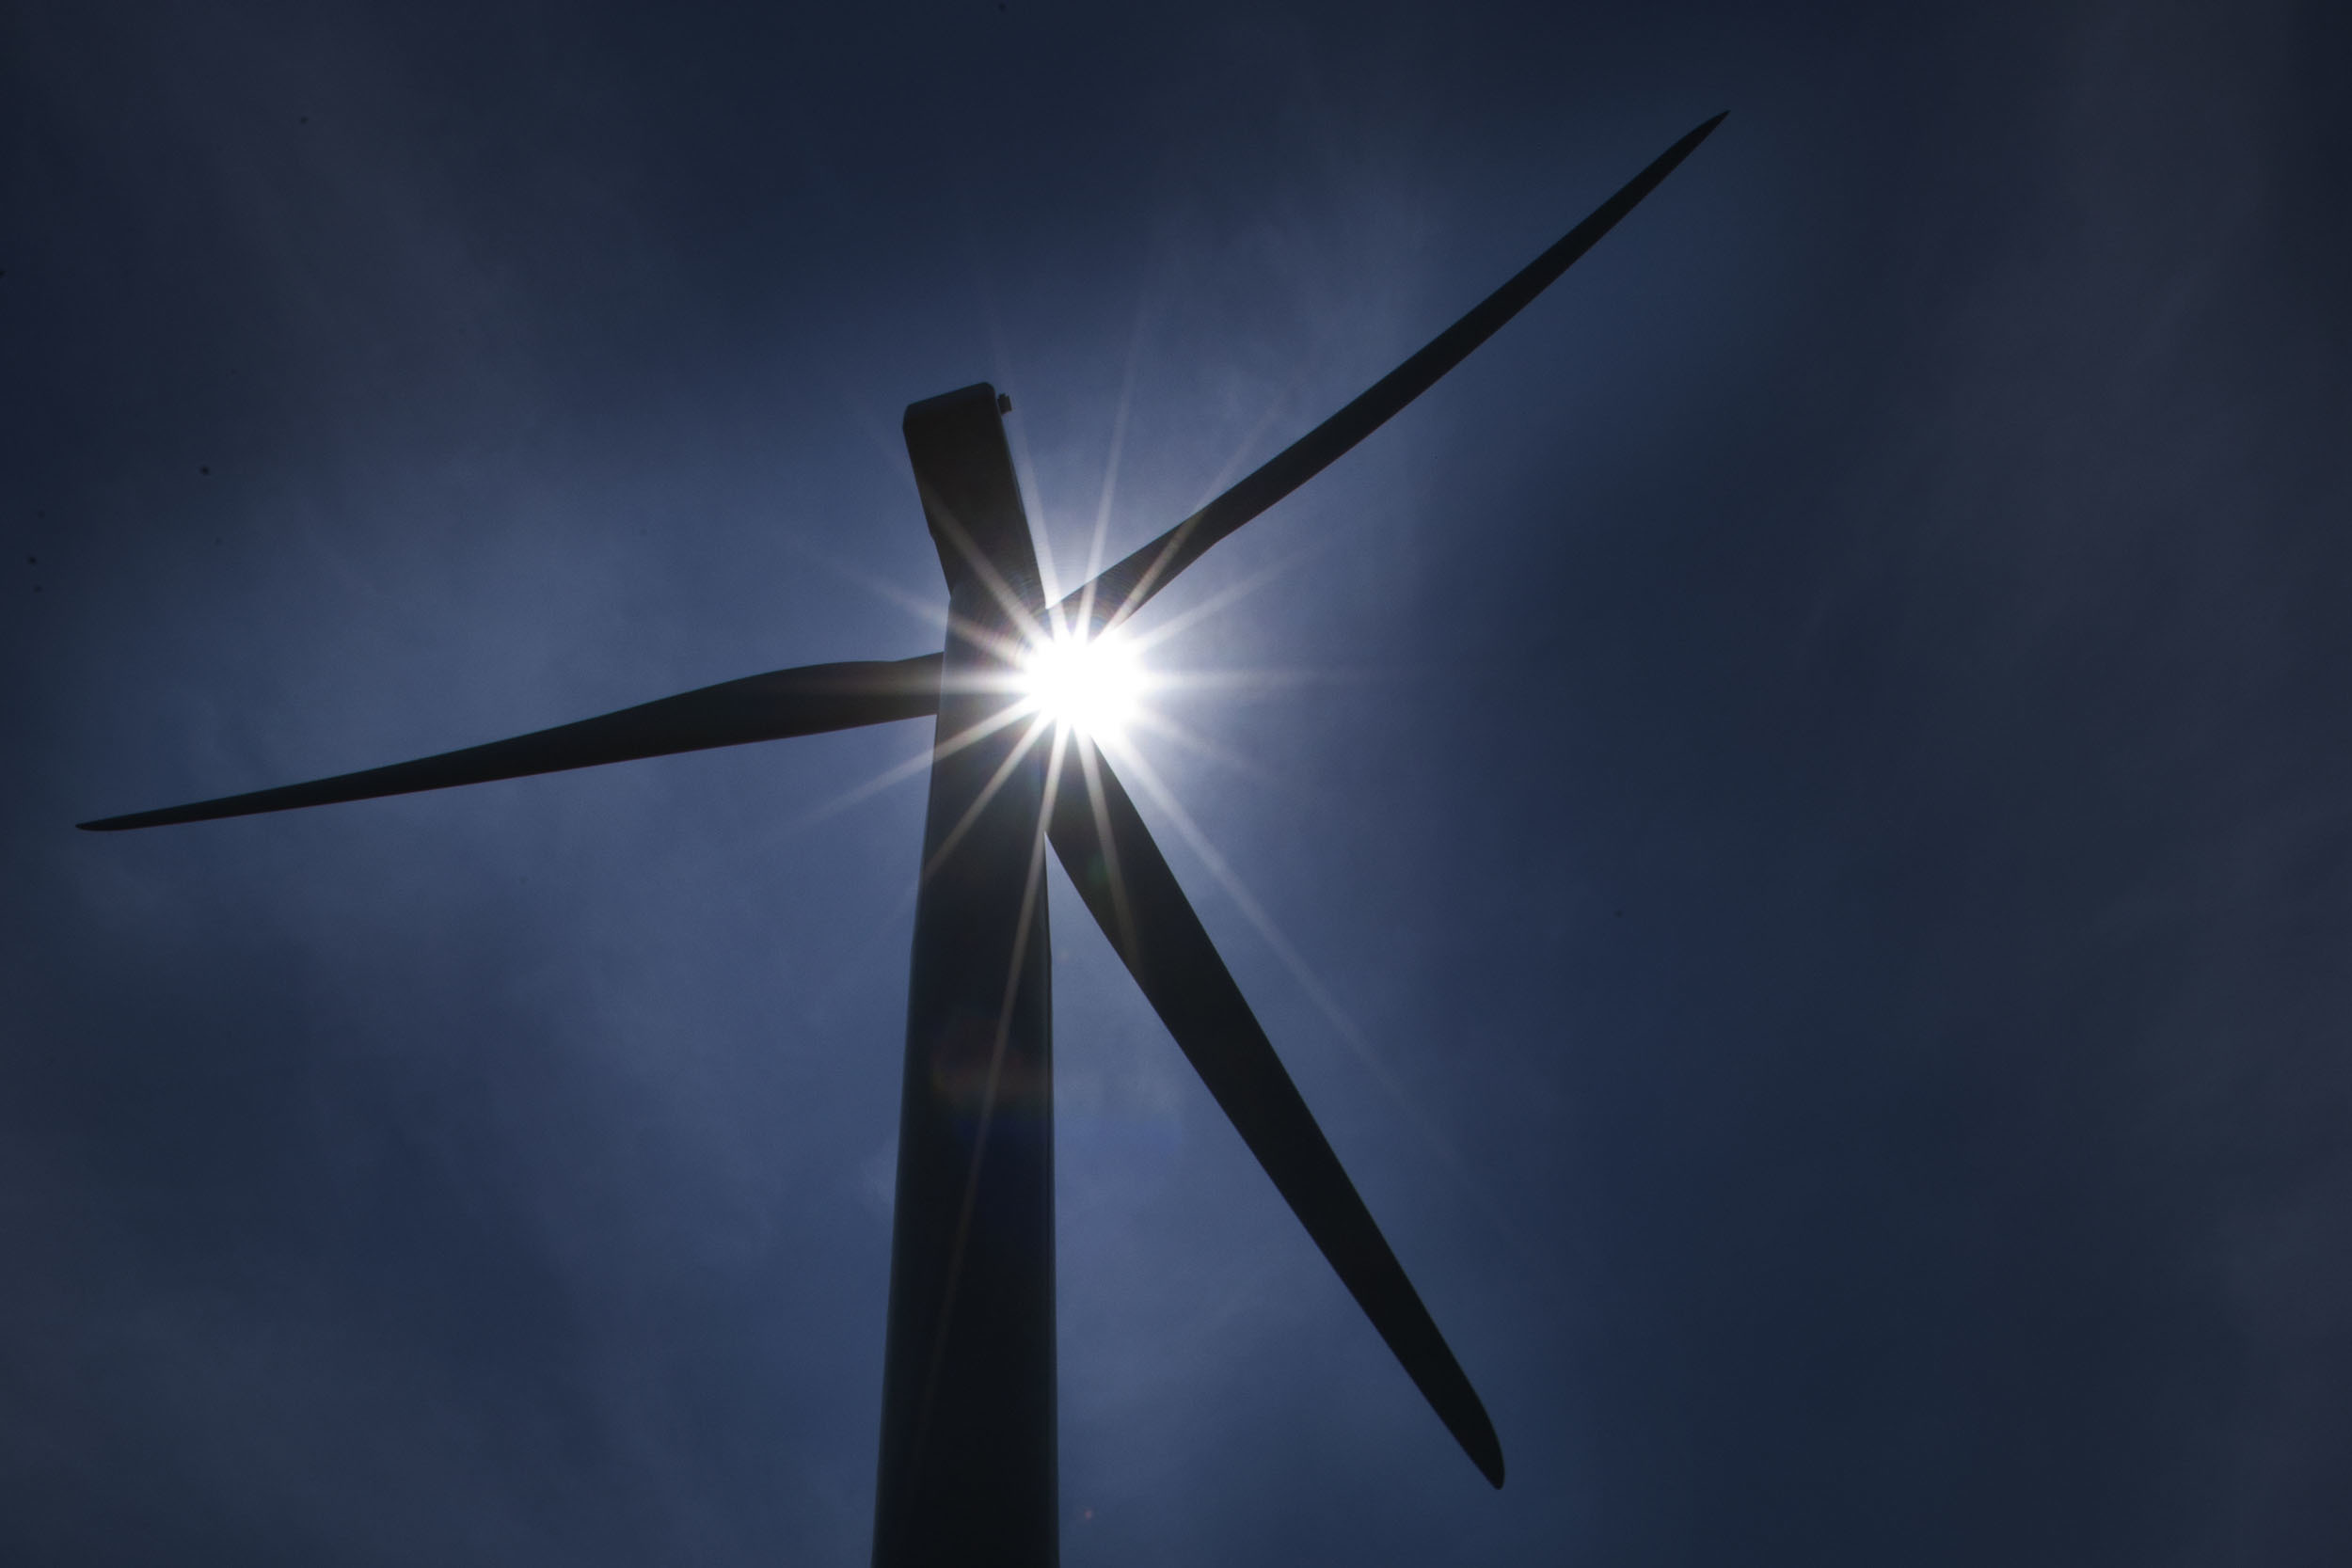 Windfarm plans criticised over potential electricity bill increase